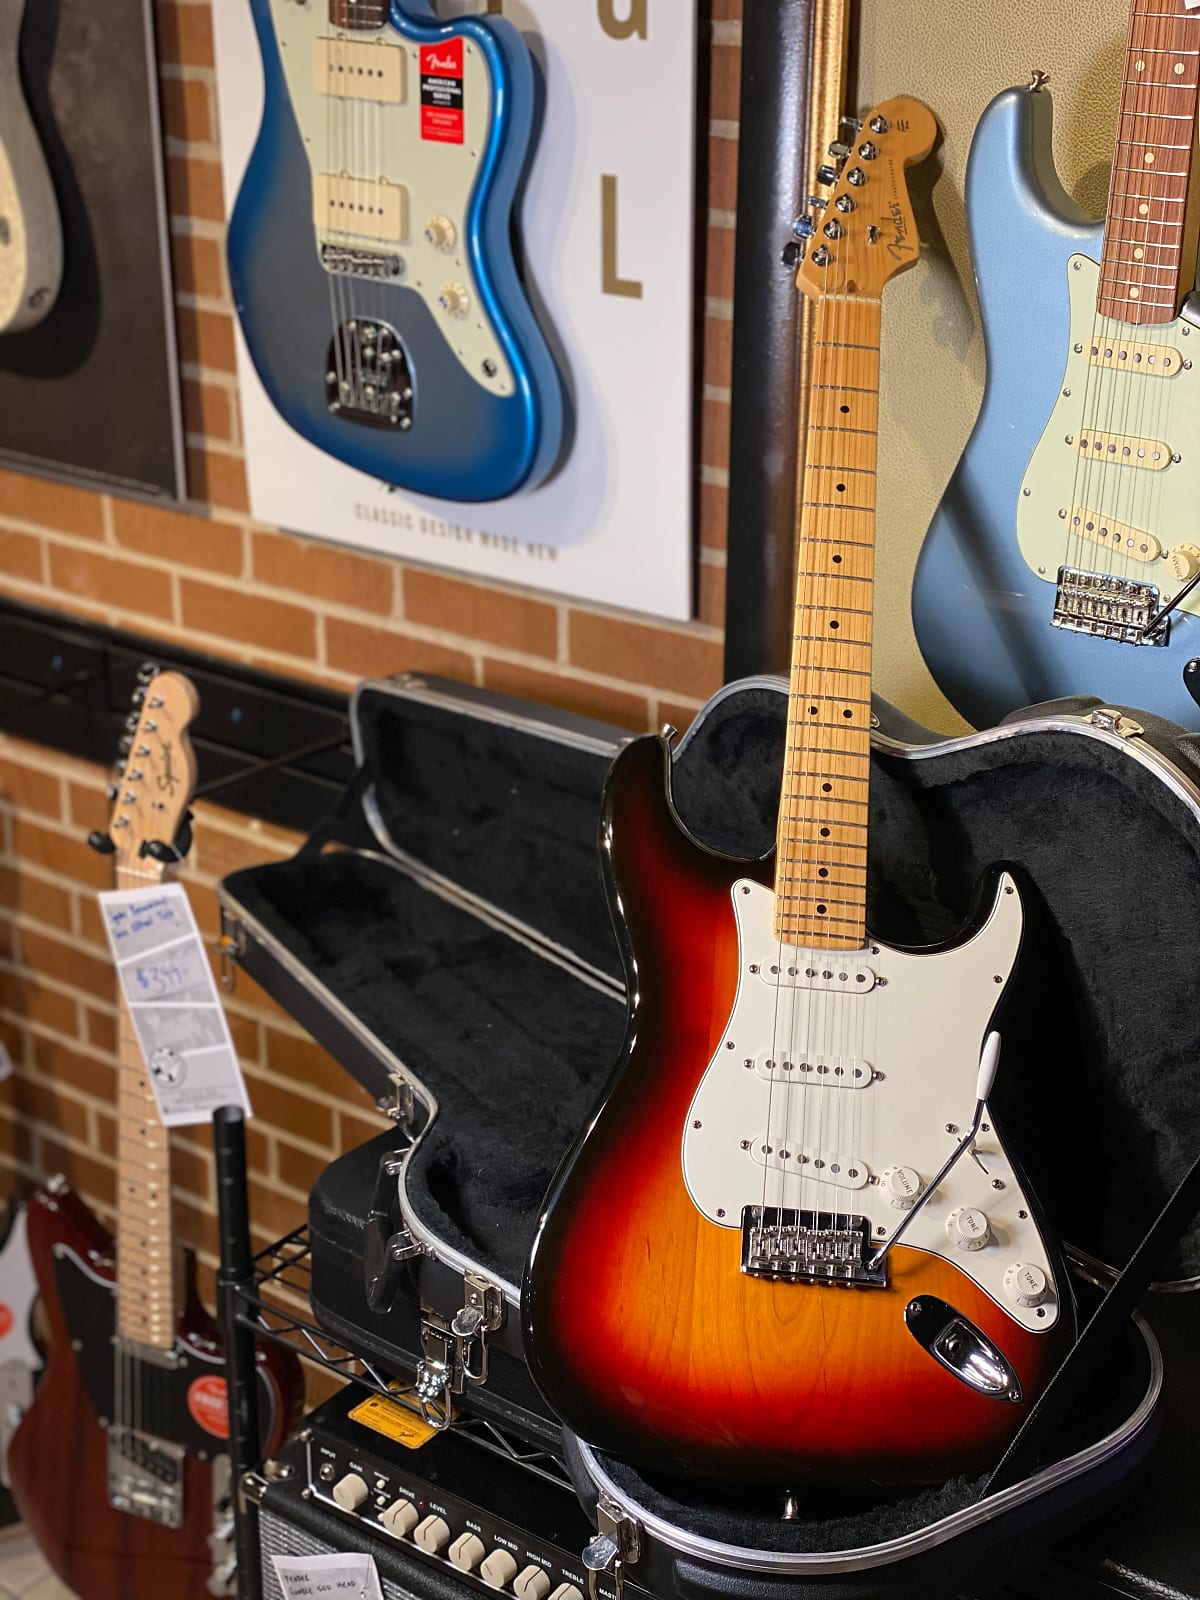 2008 Fender American Standard Stratocaster with case